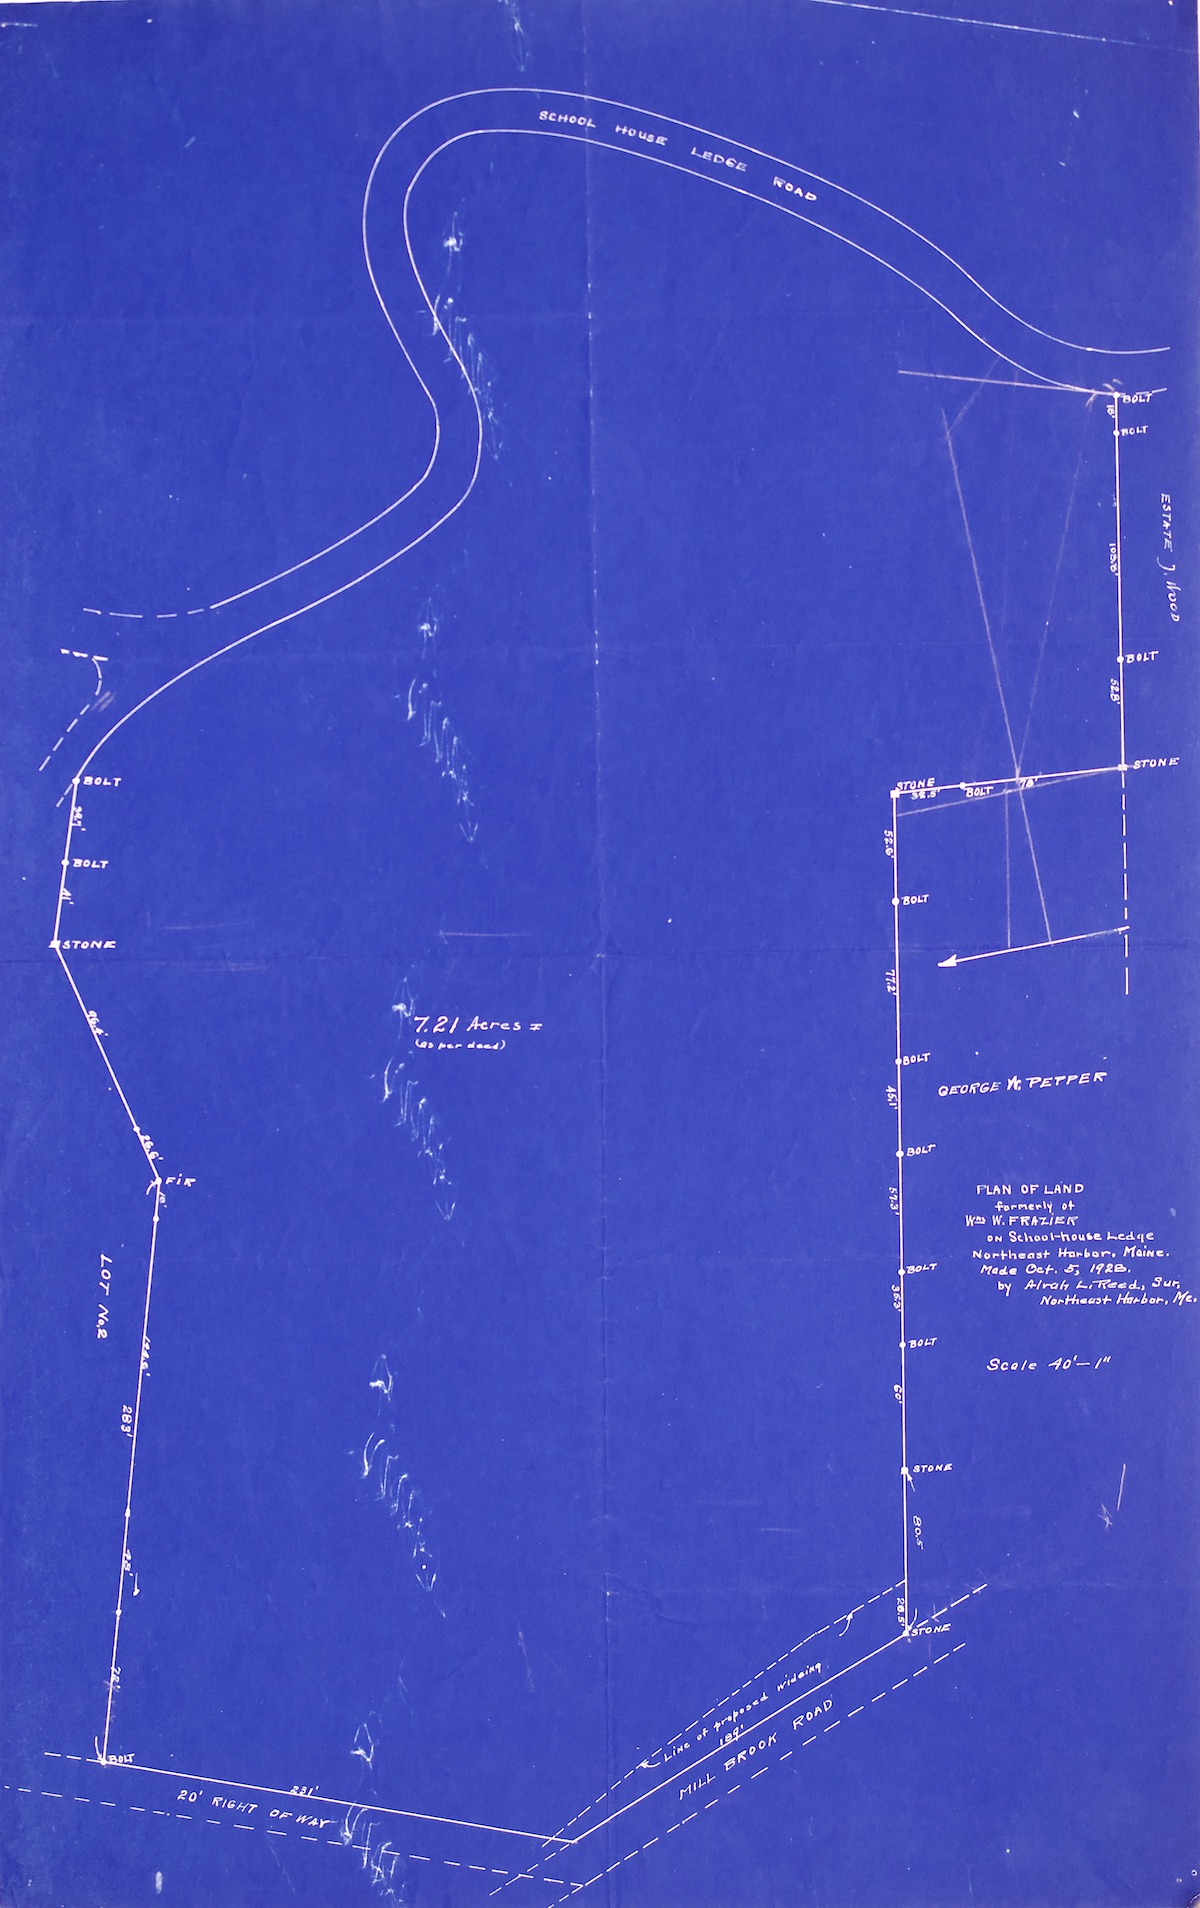 Plan of land of William W. Frazier property on Schoolhouse Ledge